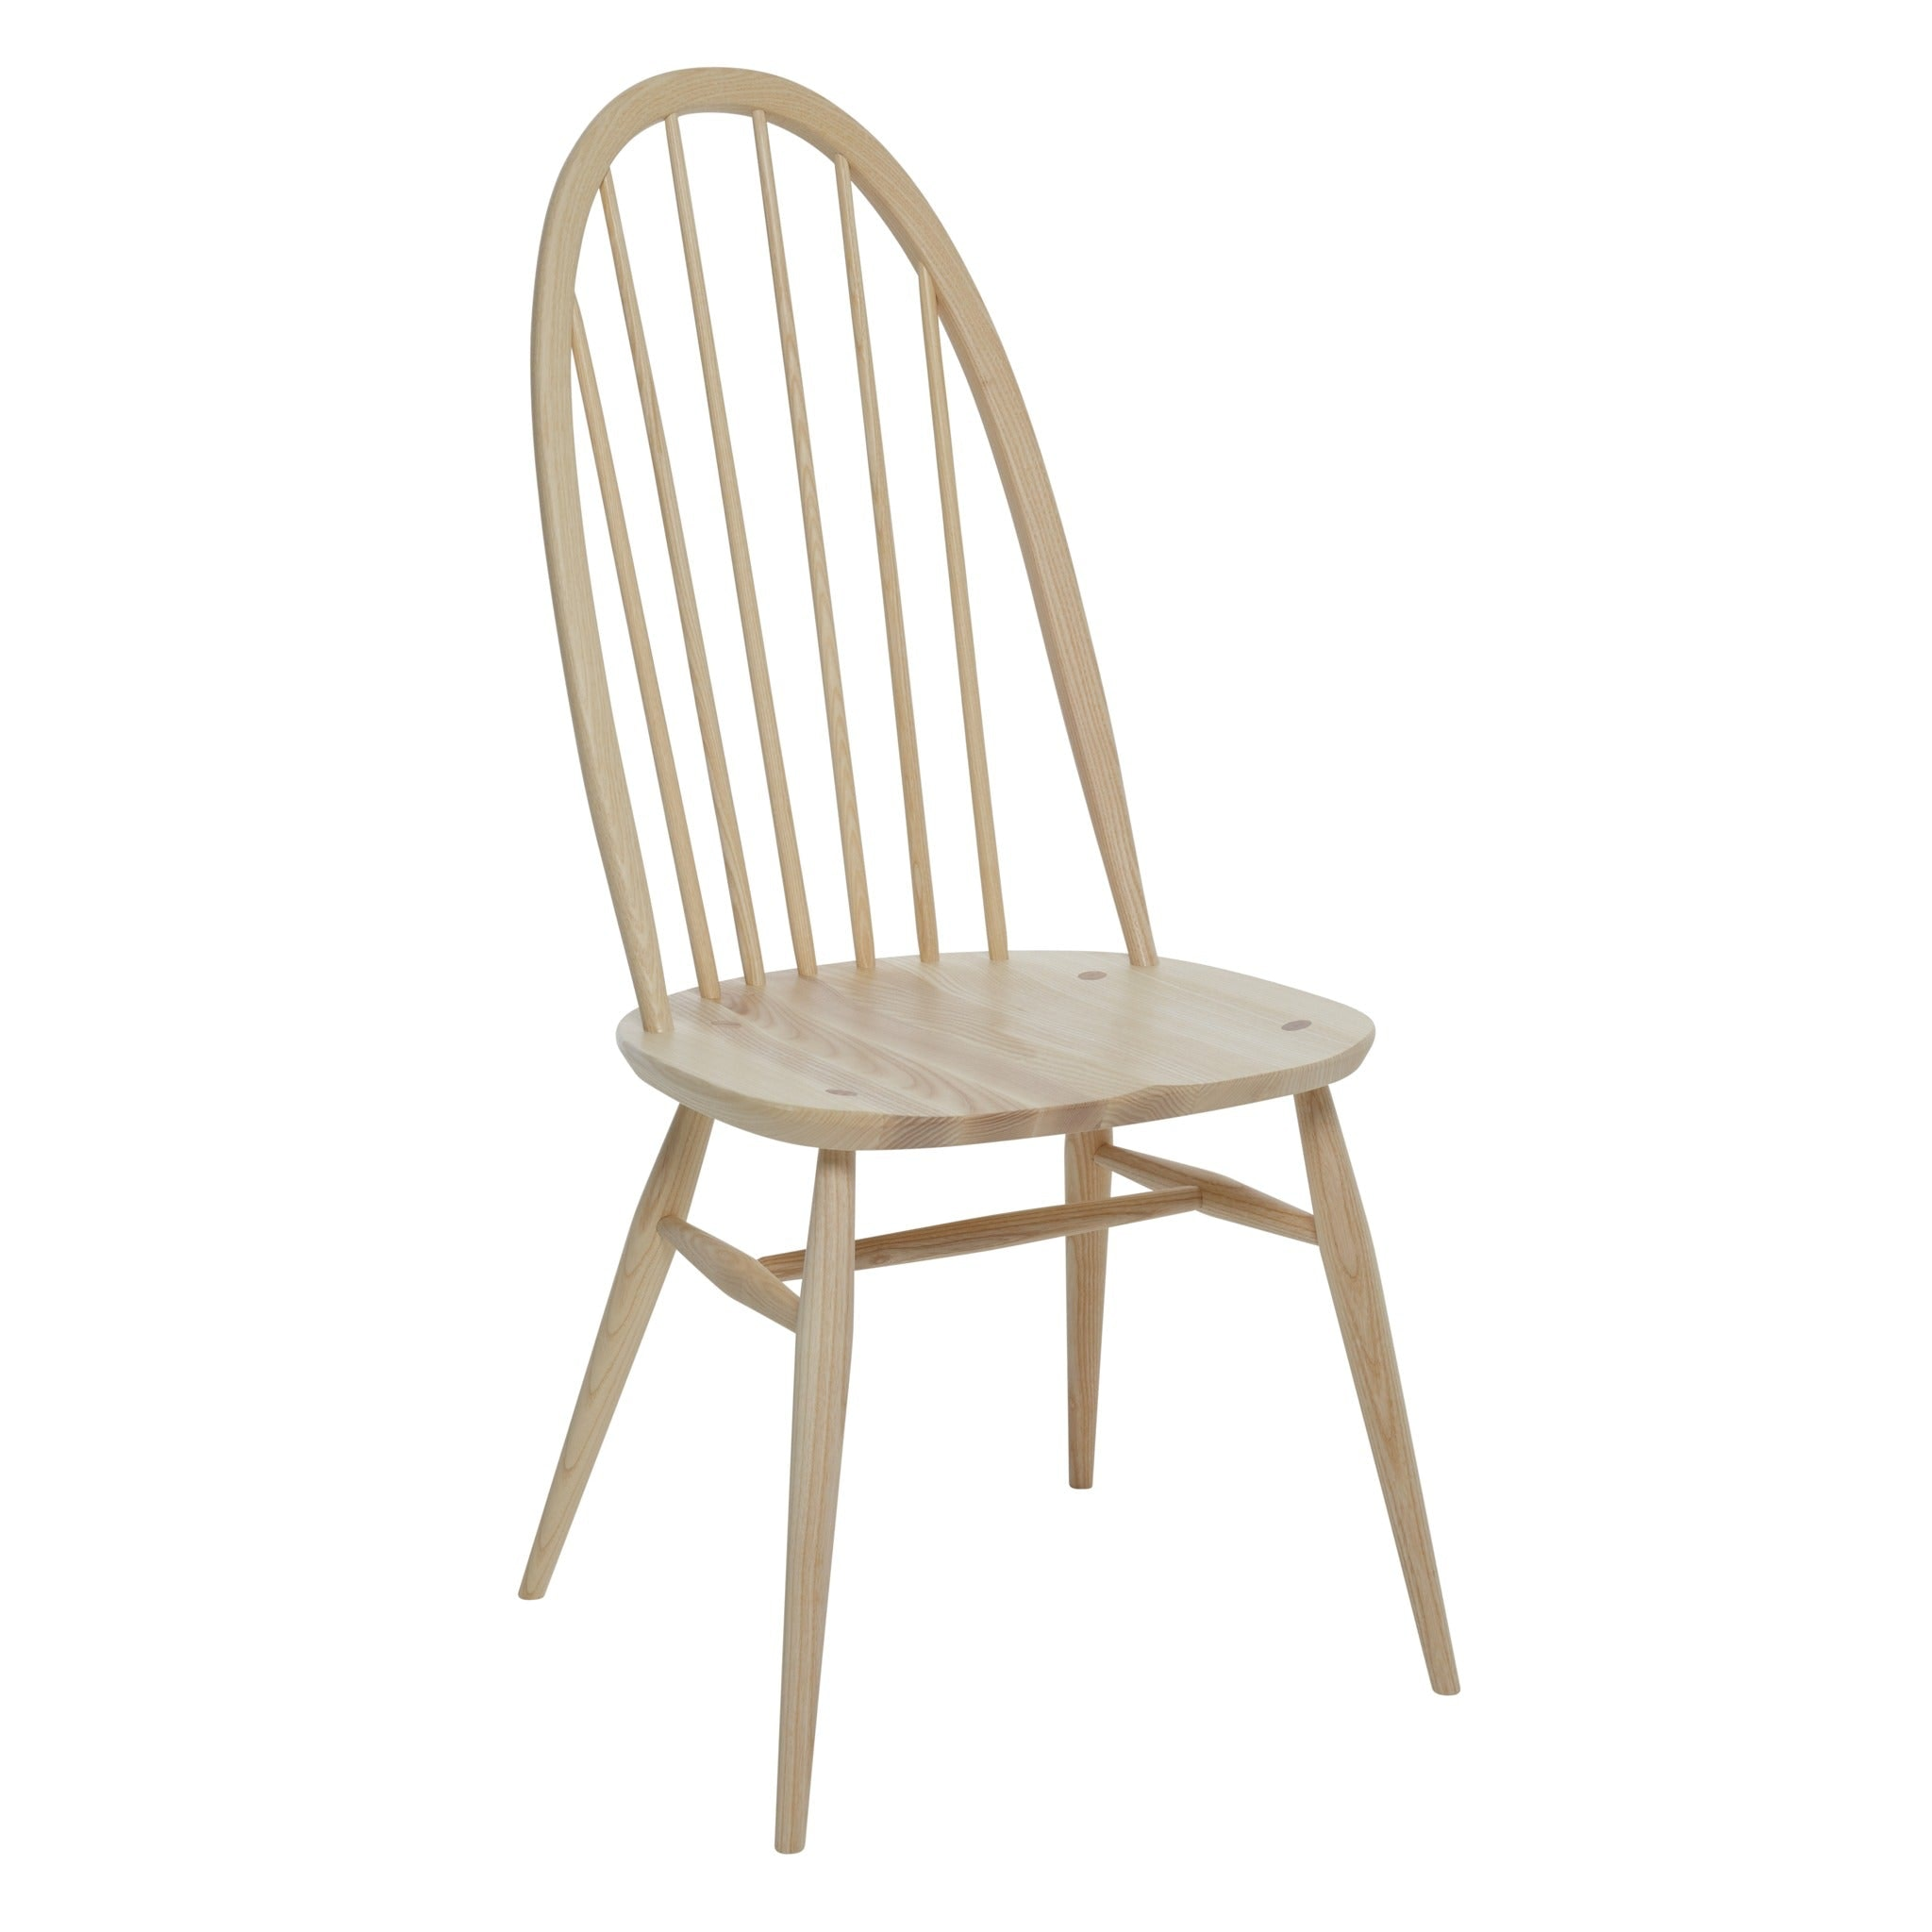 Quaker Chair by Ercol